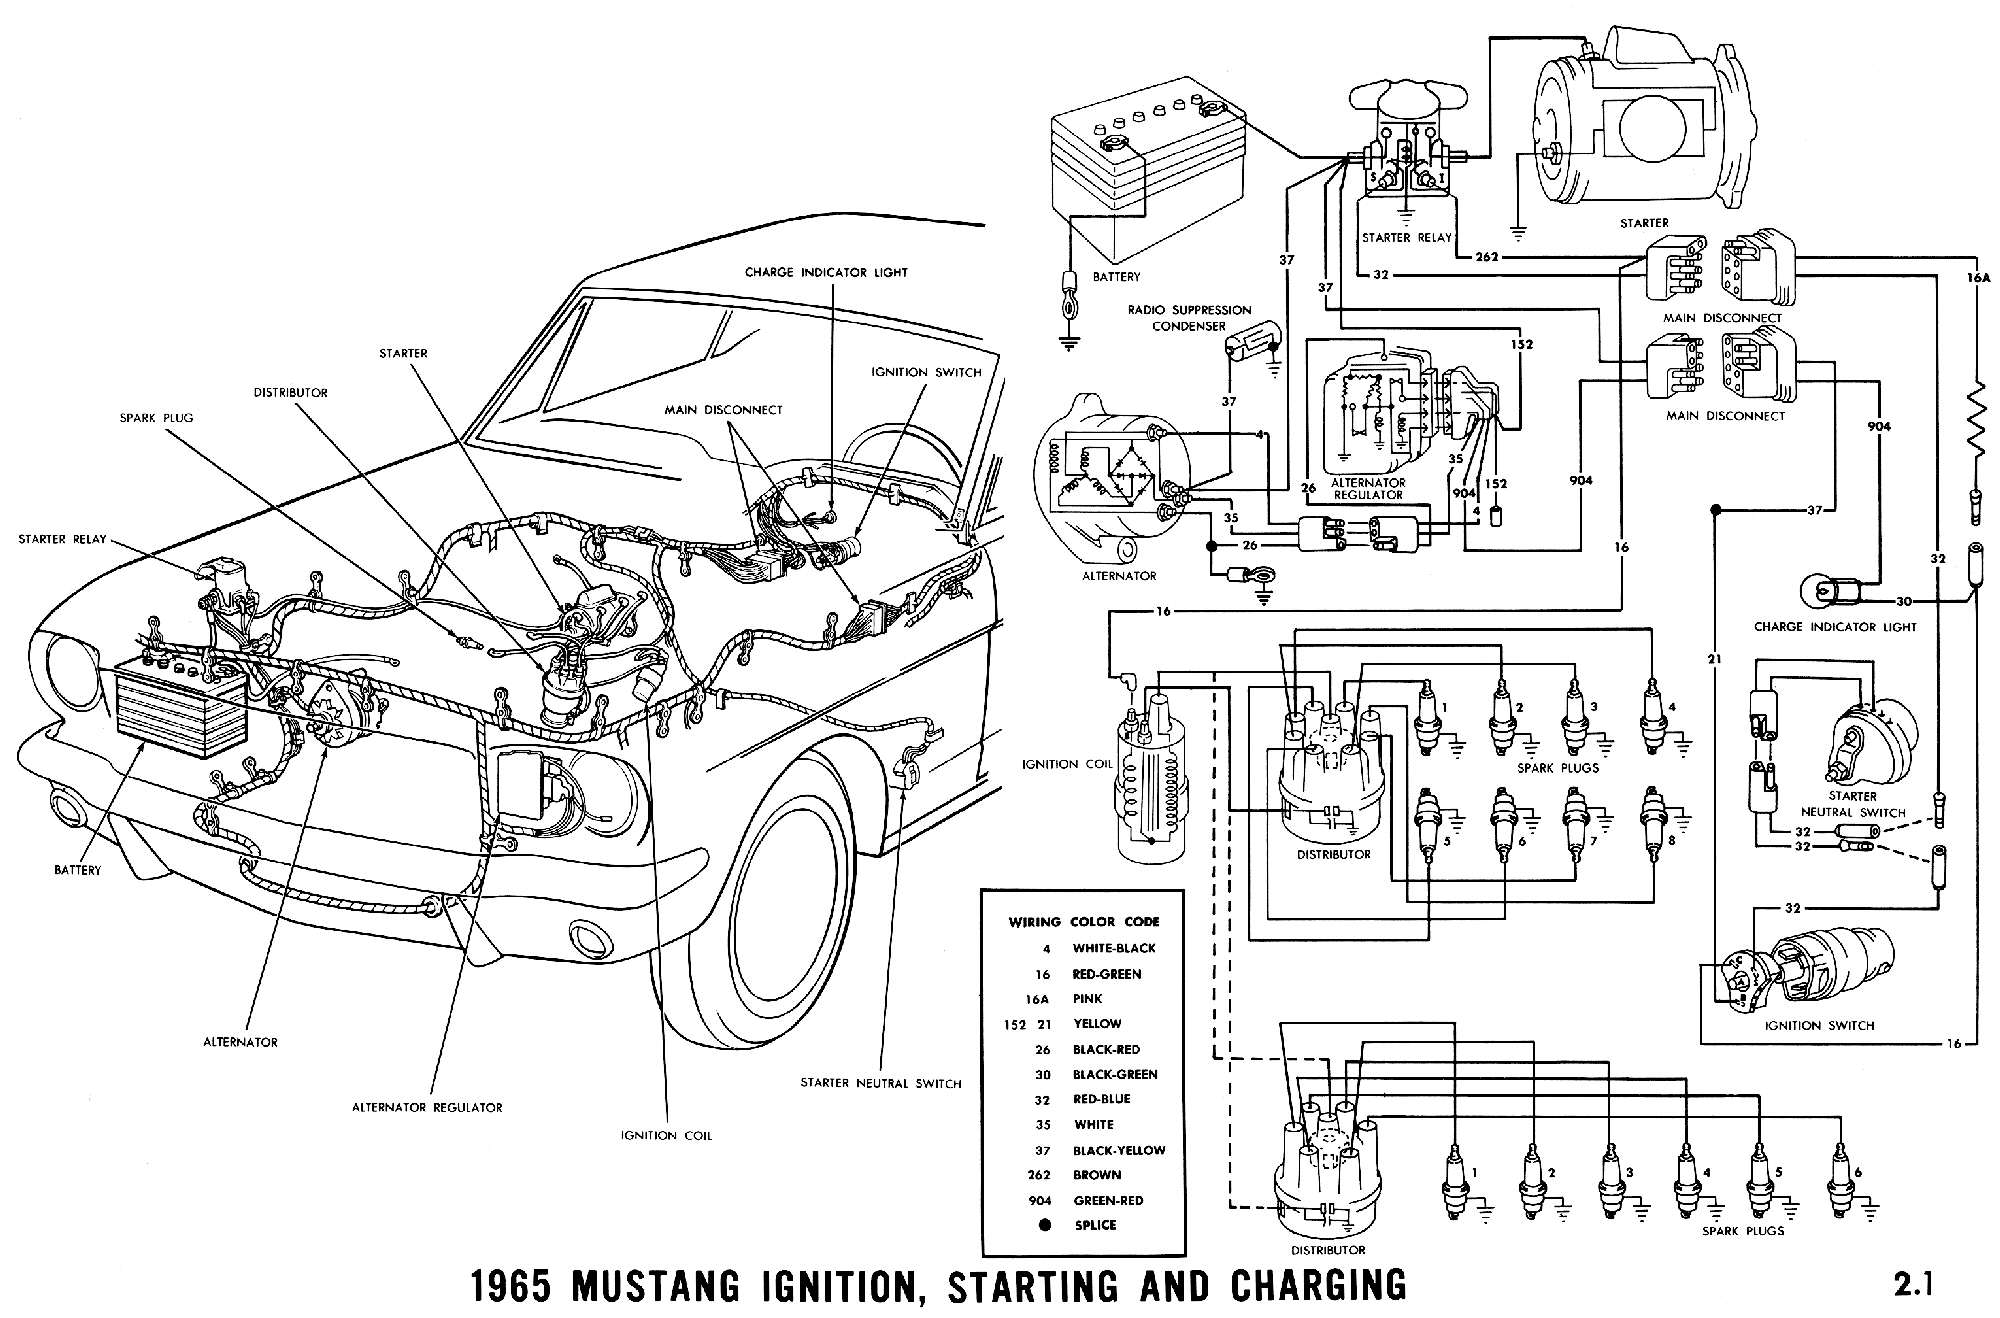 1965c 1965 mustang wiring diagrams average joe restoration ford mustang wiring diagram at arjmand.co